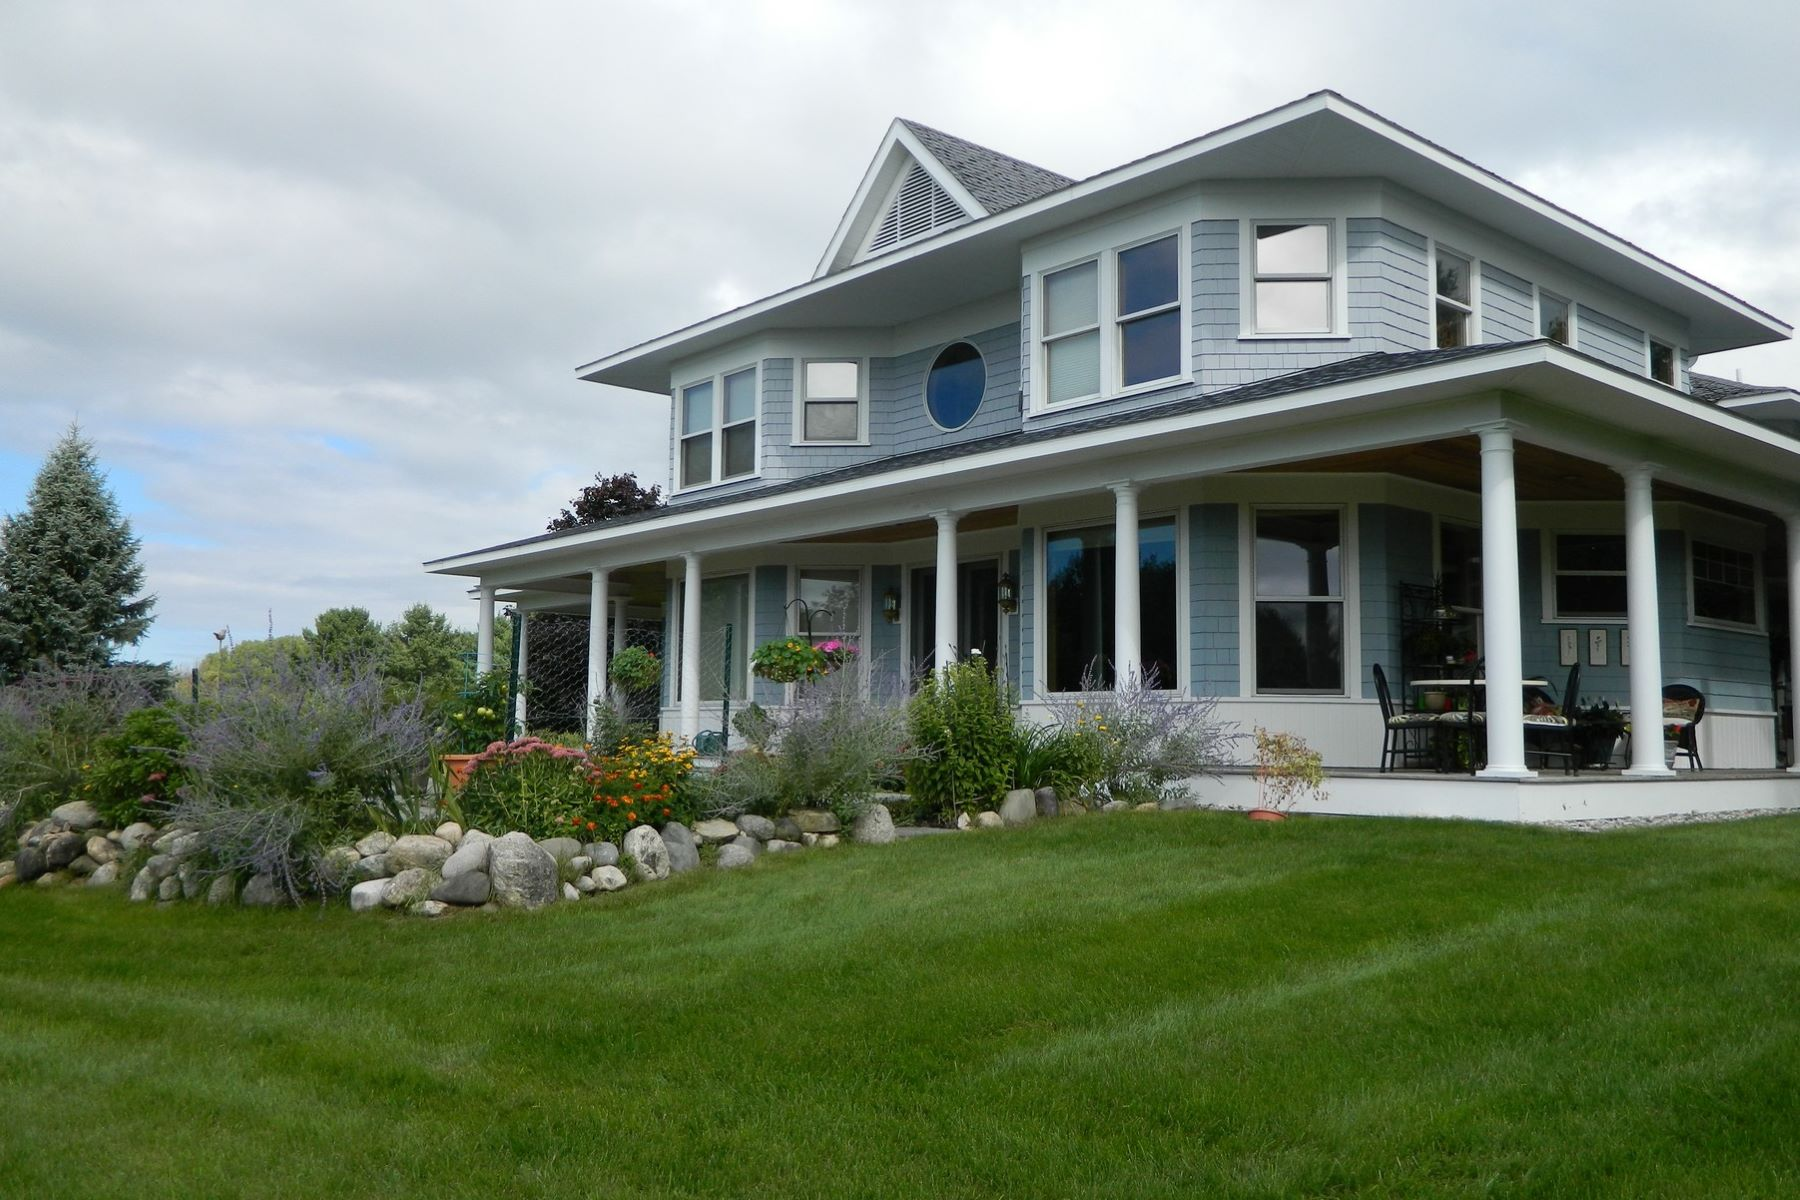 Casa Unifamiliar por un Venta en 6281 S. Lake Shore Drive, Harbor Springs Harbor Springs, Michigan, 49740 Estados Unidos